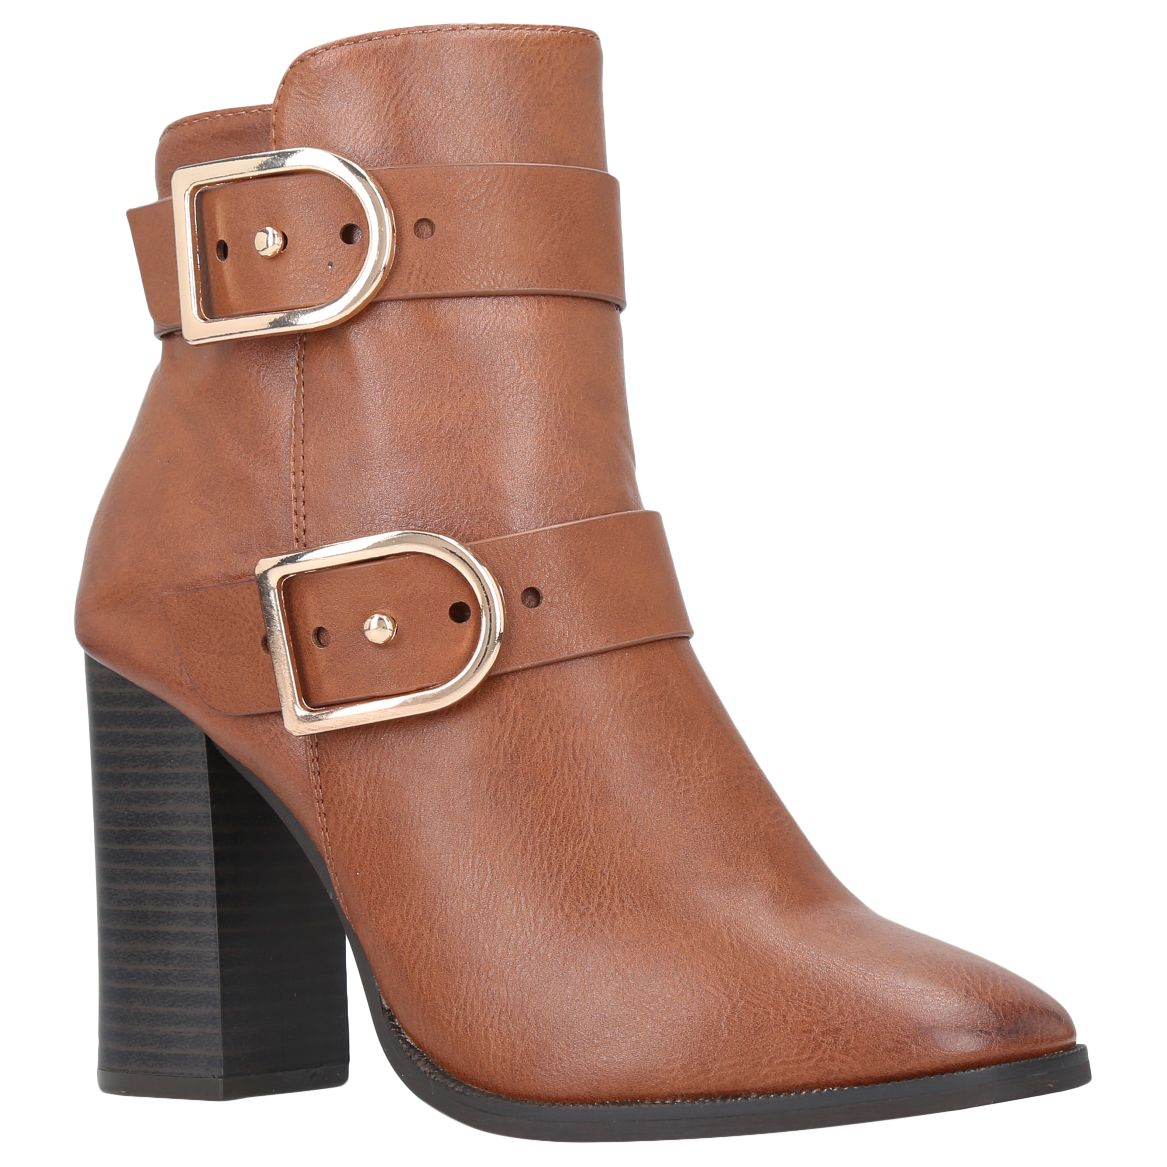 cb5bffd3130 Miss KG Spring Block Heeled Ankle Boots at John Lewis & Partners